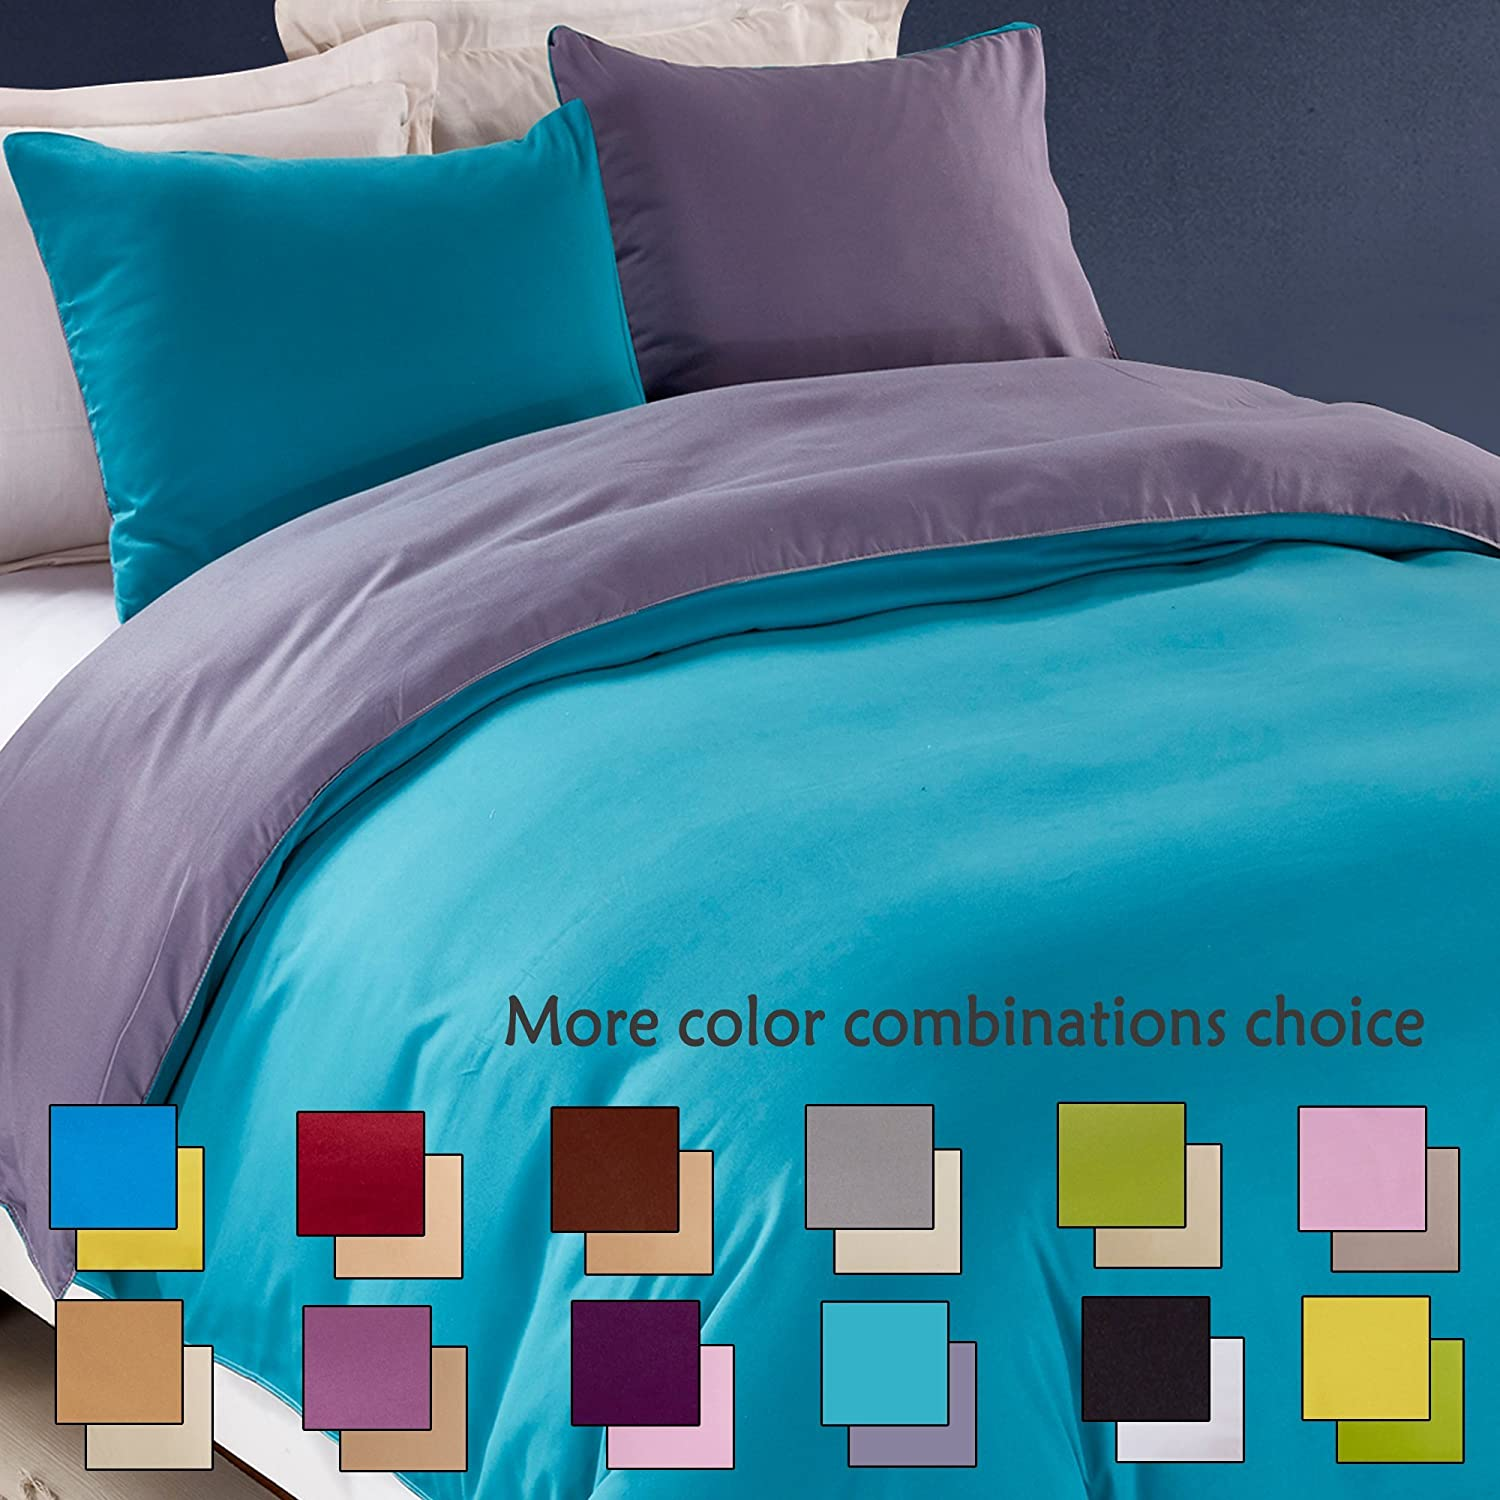 3 Pieces Full/Queen Reversible Solid Color Microfiber Duvet Cover Set